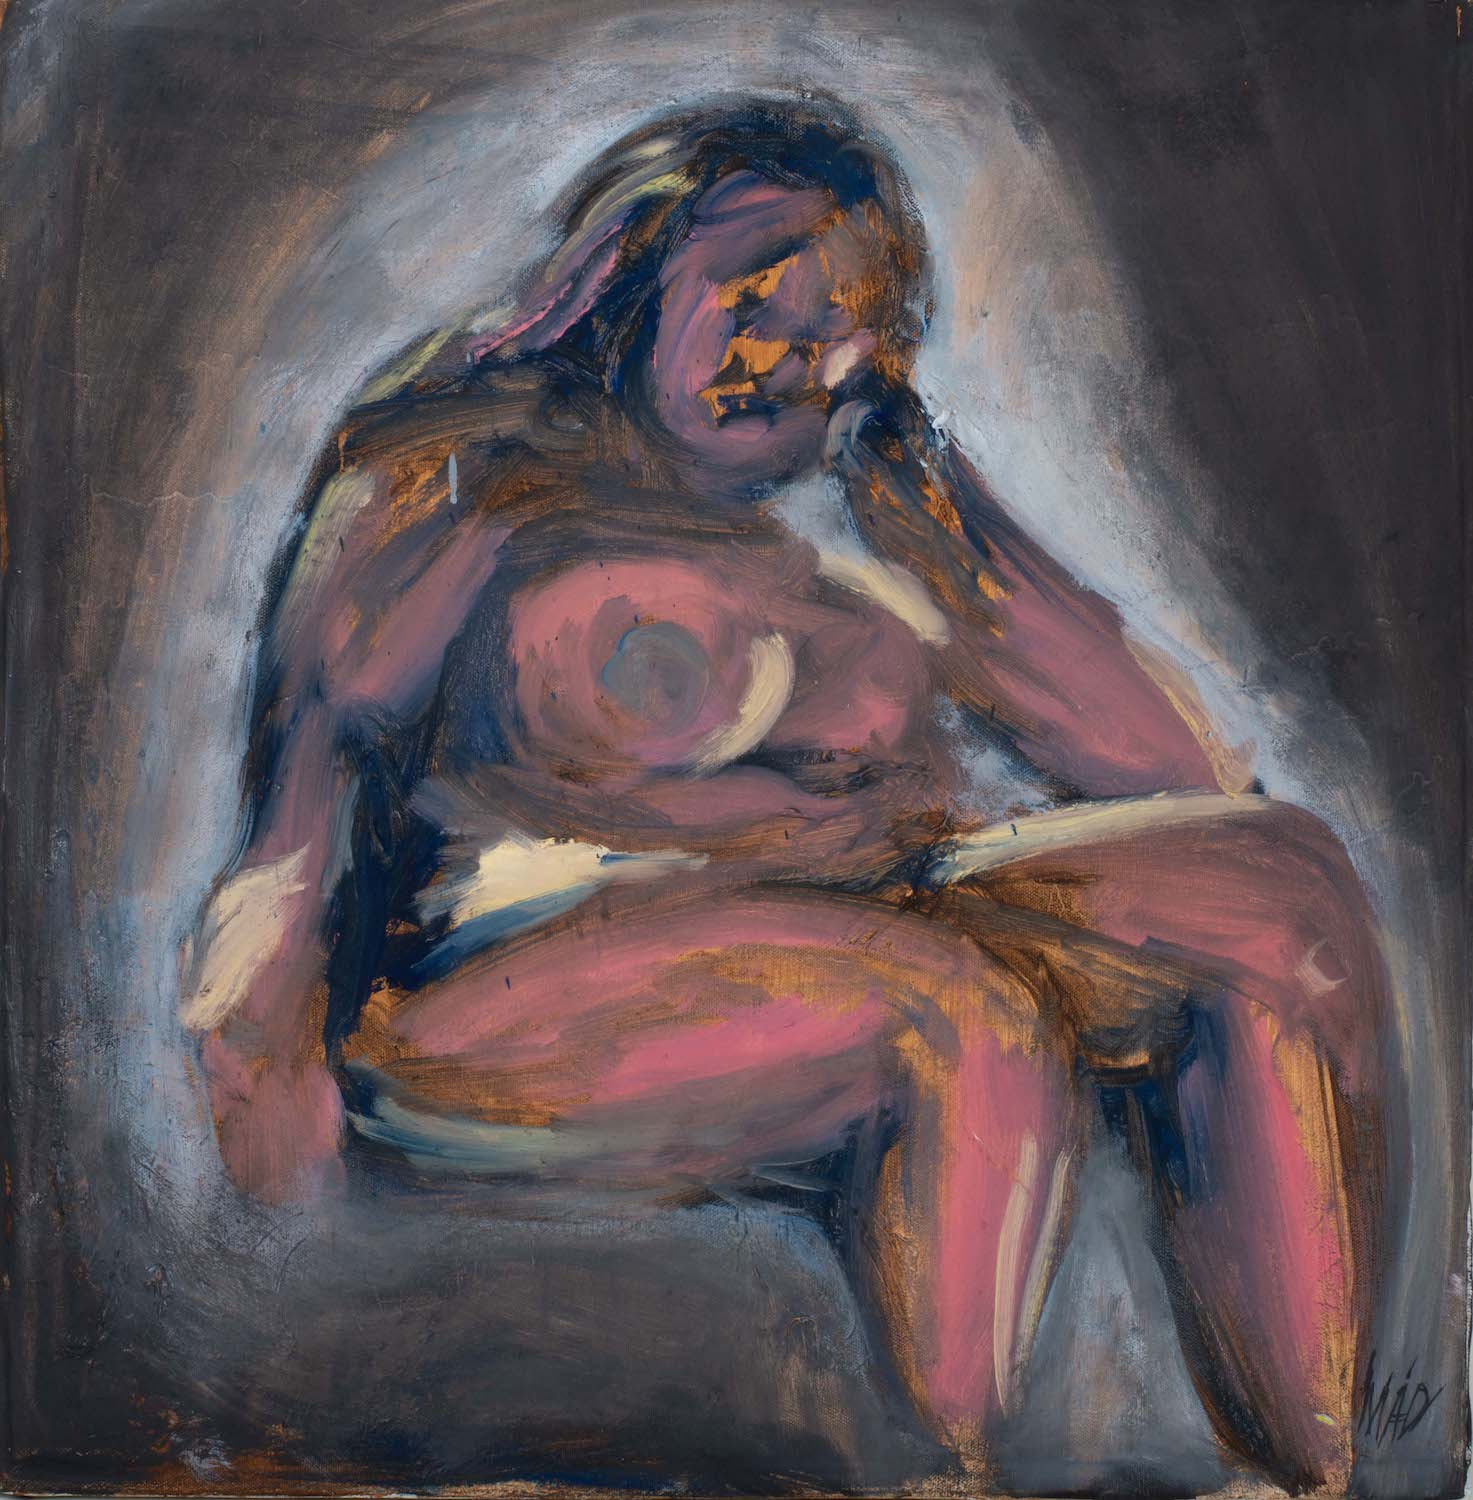 naked woman against a dark background